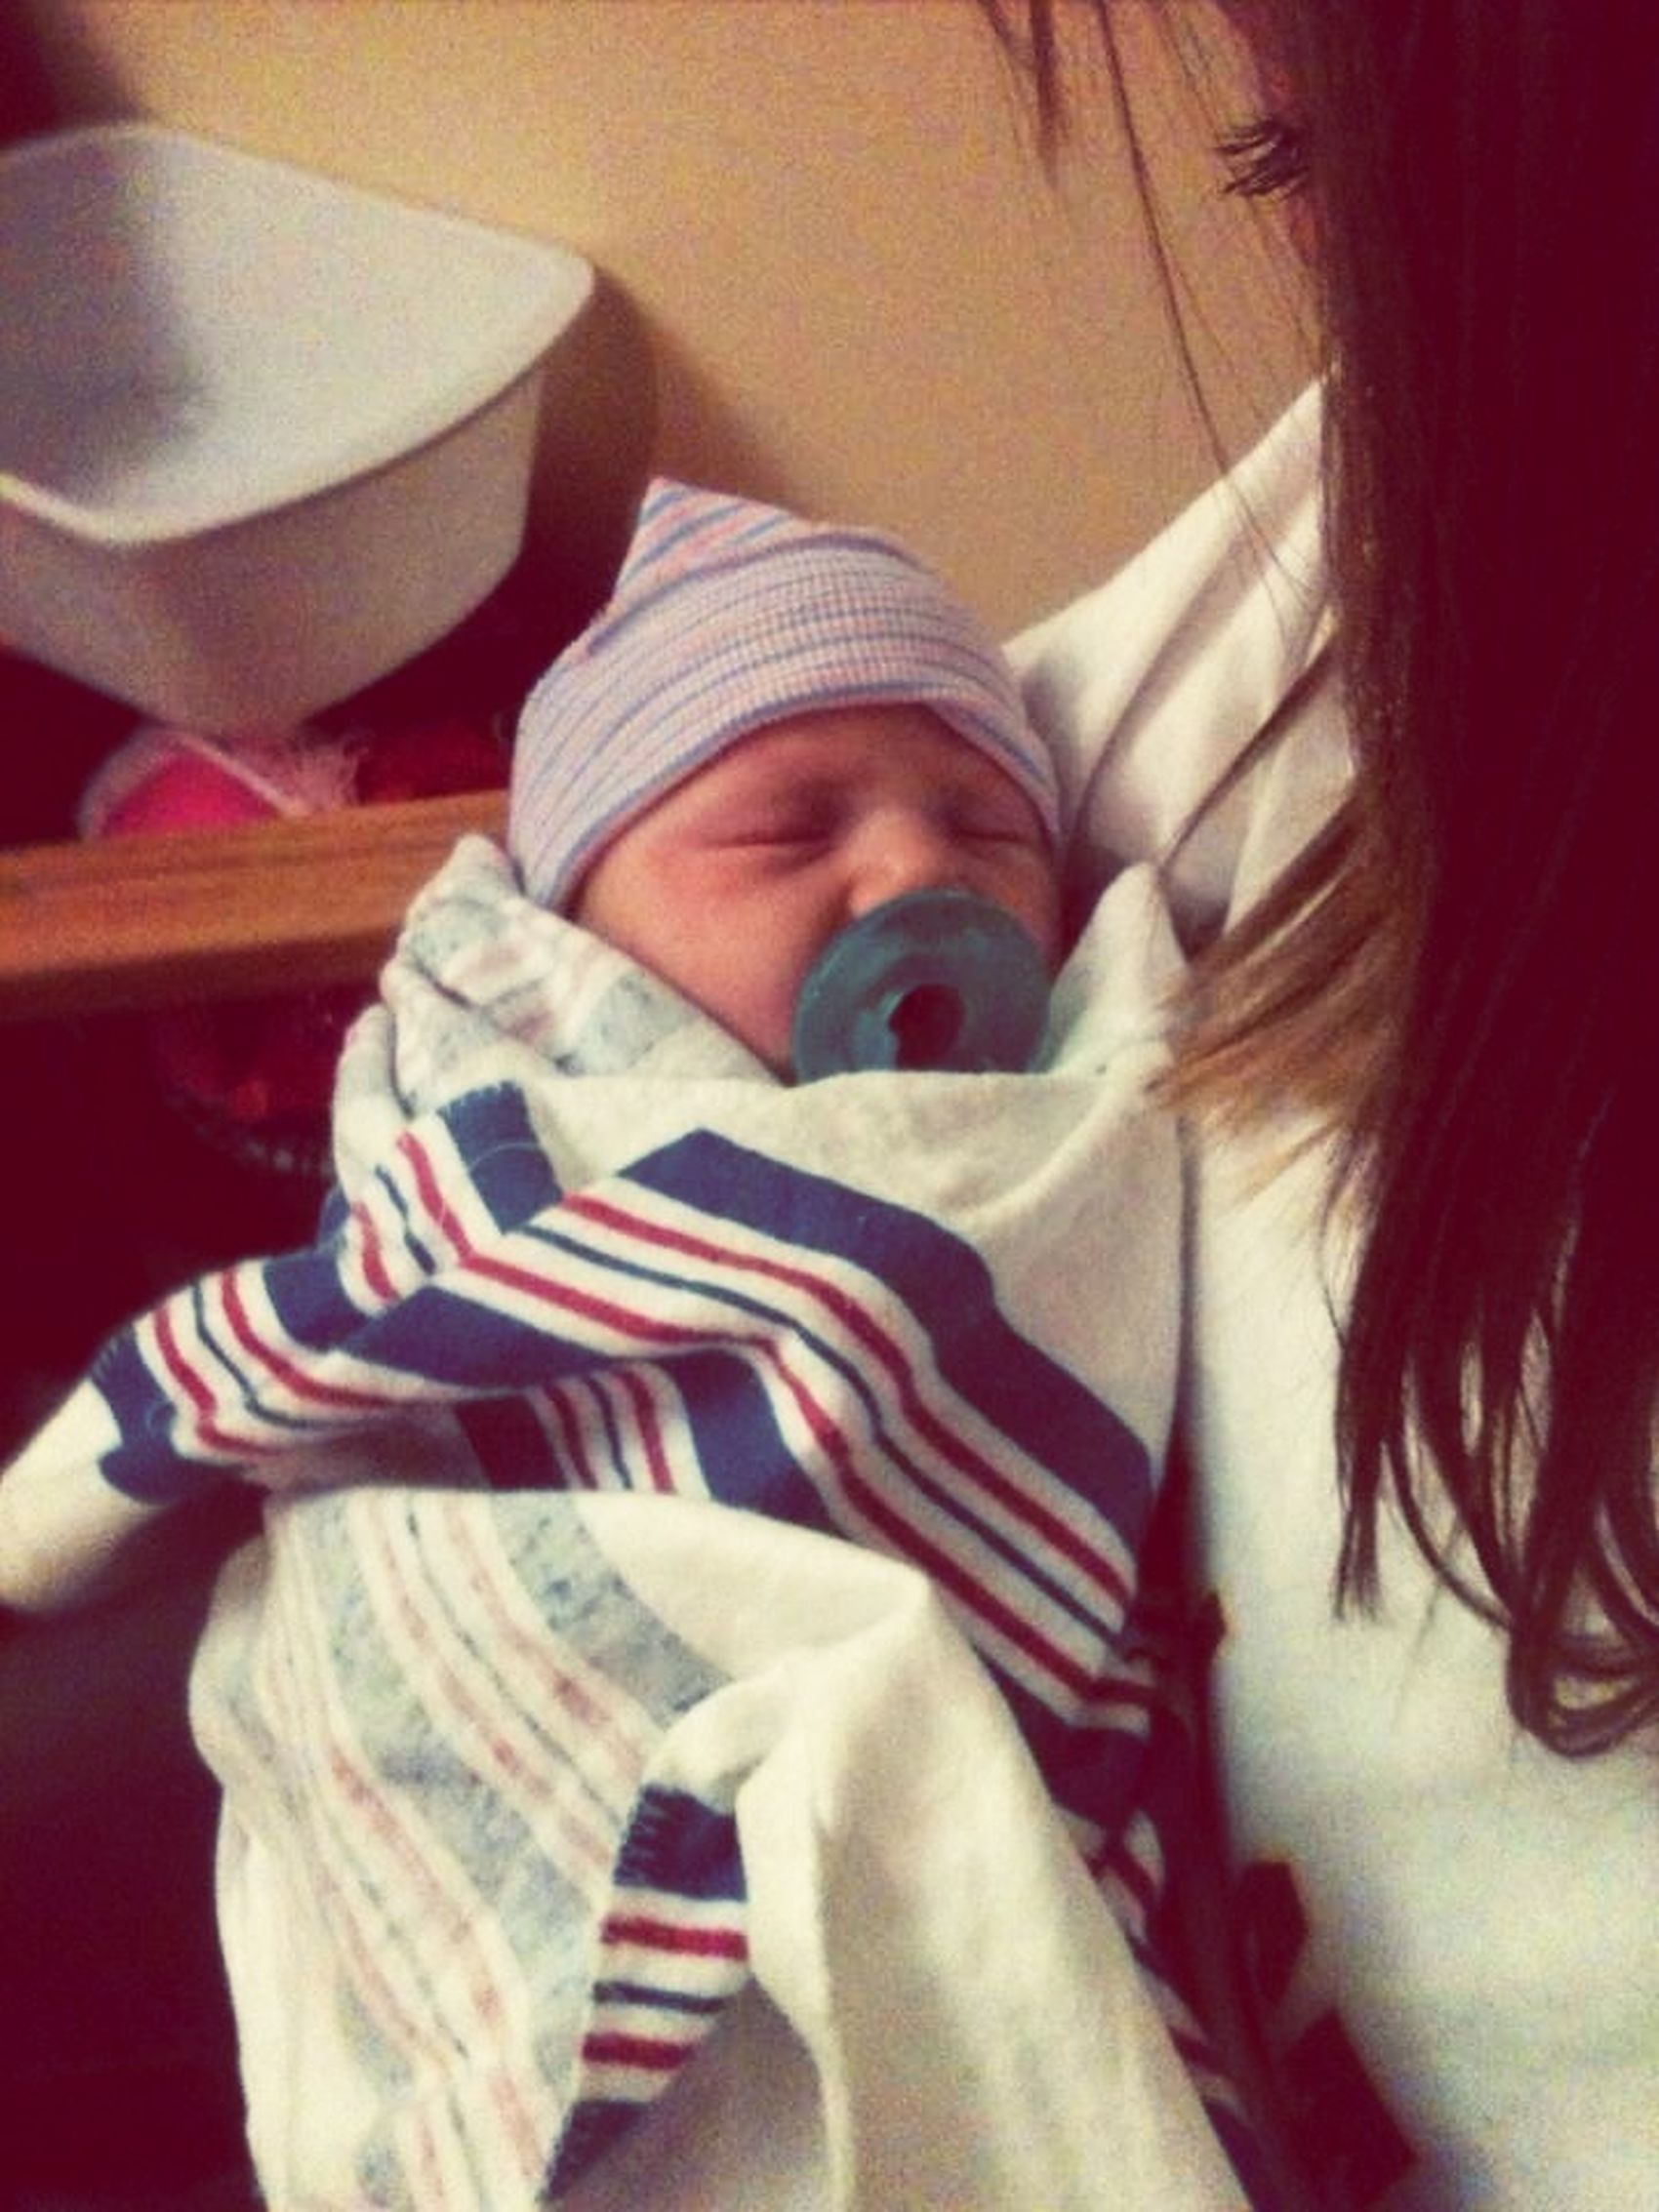 Baby Cousion<3